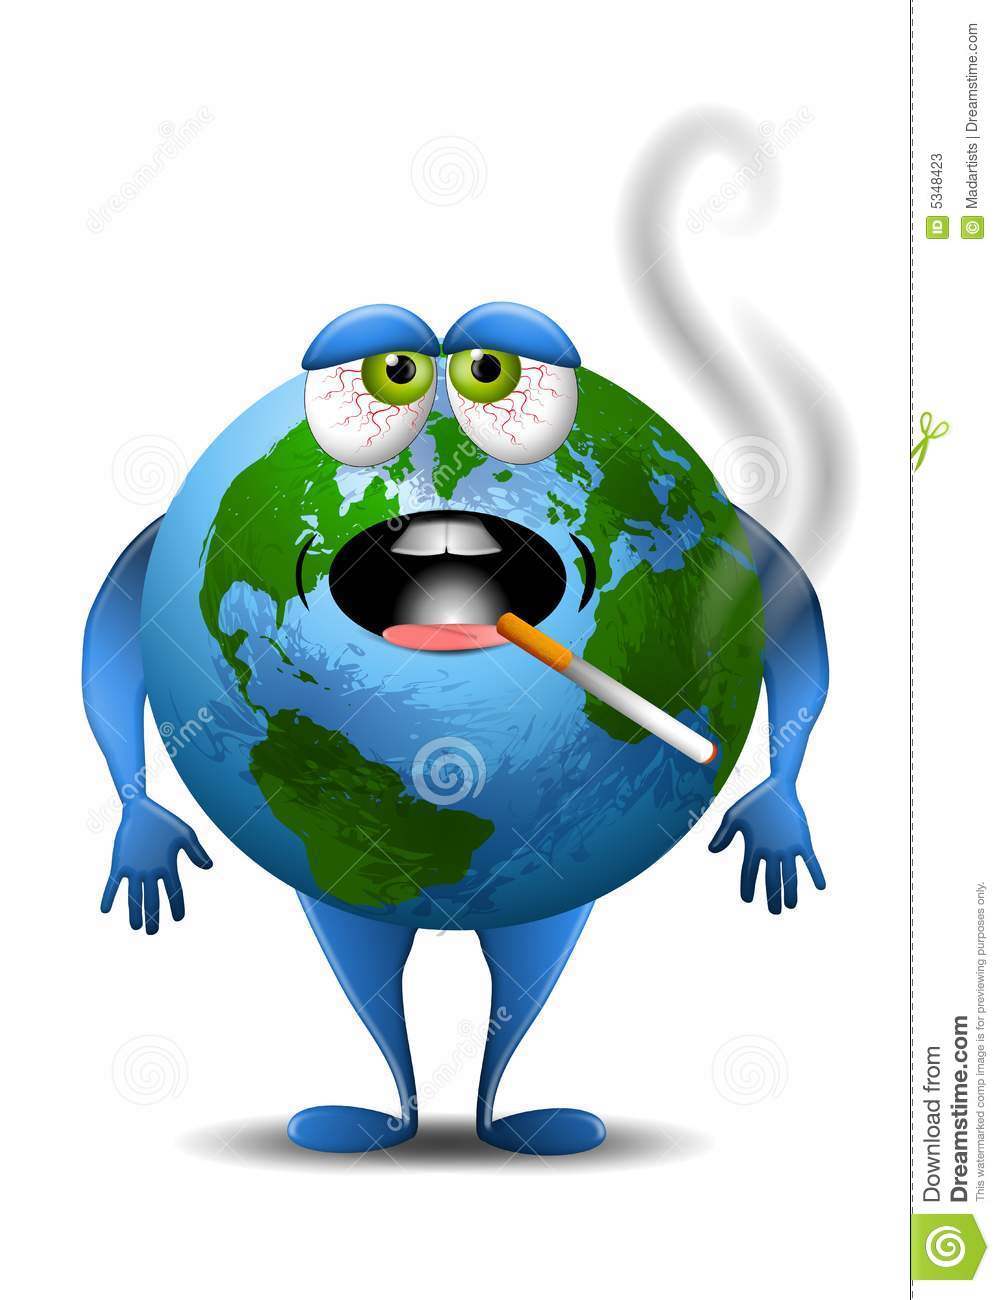 Fat Unhealthy Overweight Earth